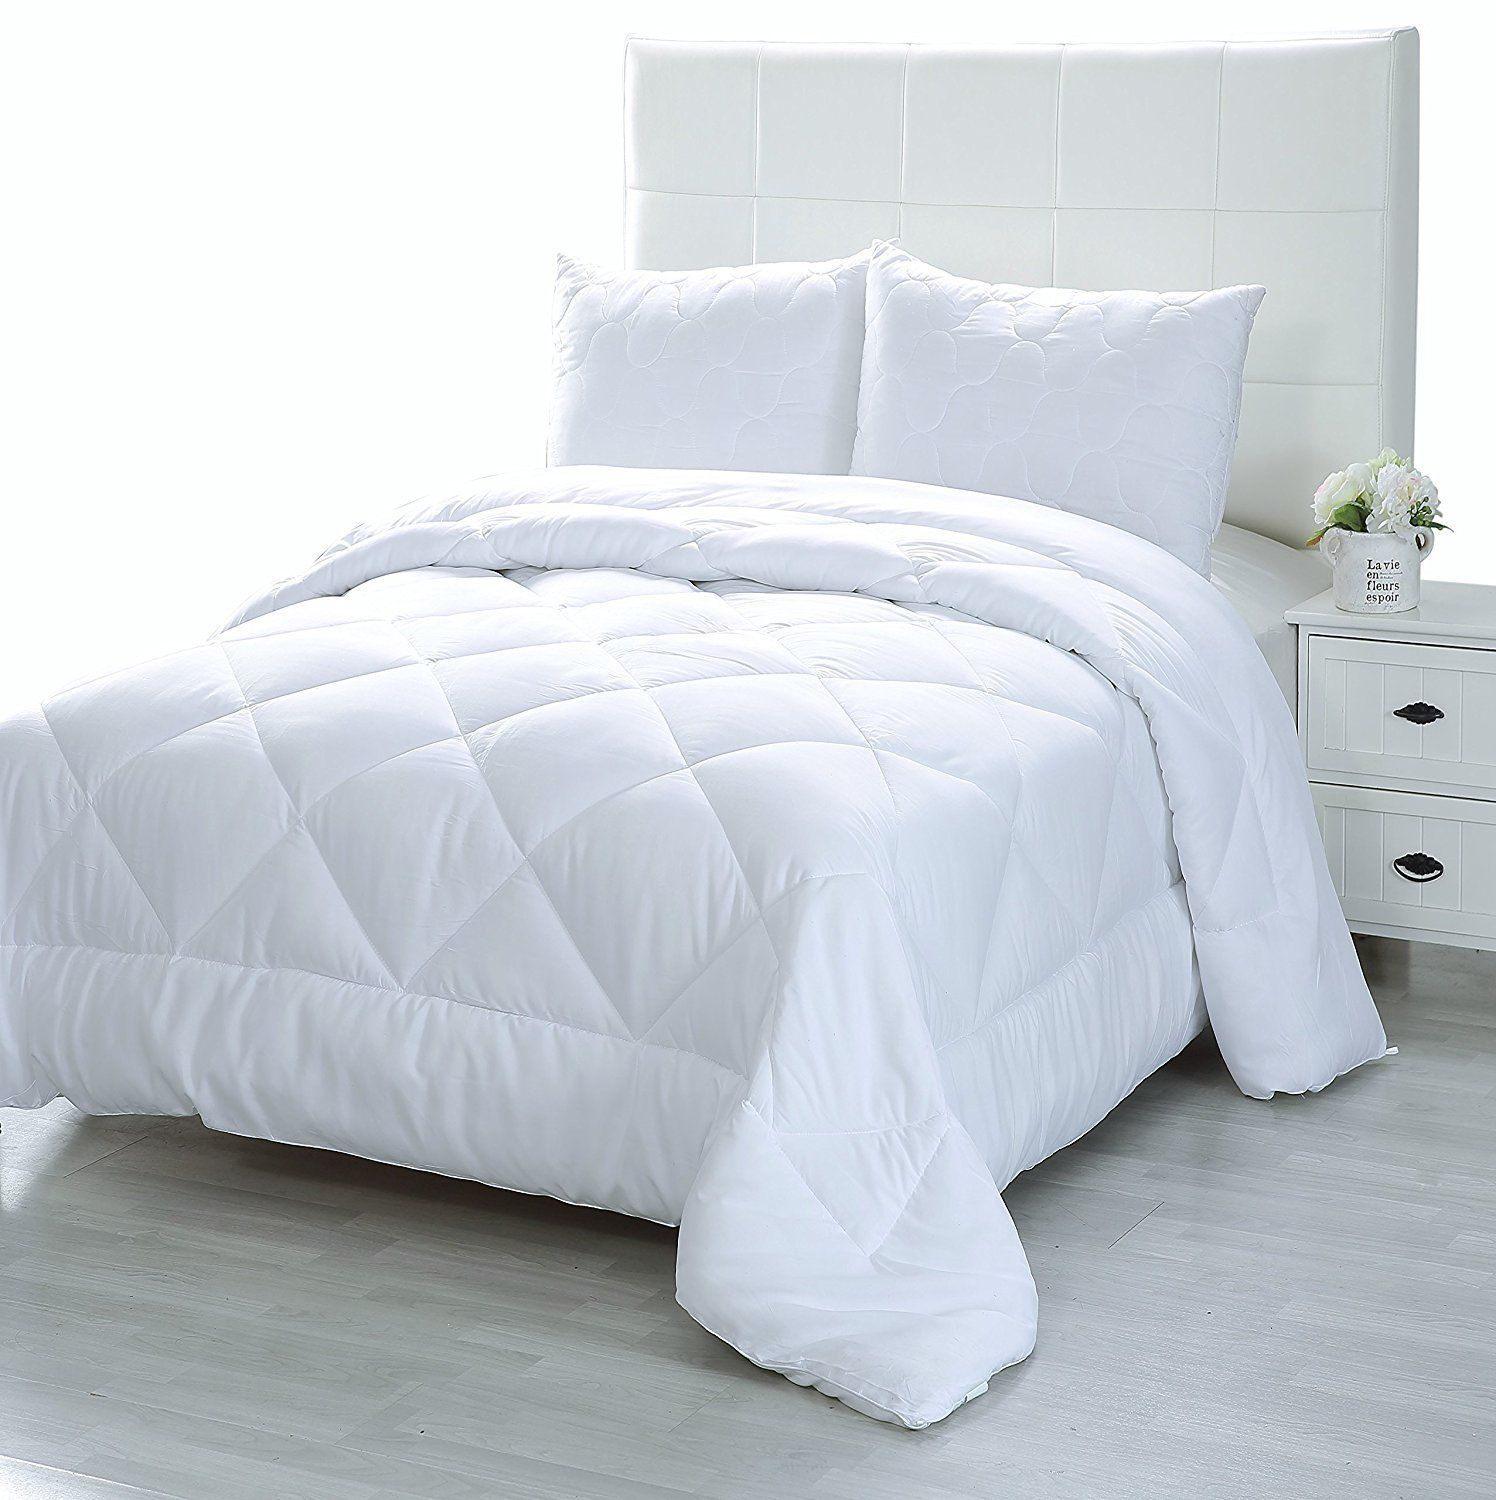 of super soft uncategorized size clara with down clark duvet count thread best comforter full insert nice sheets beautiful